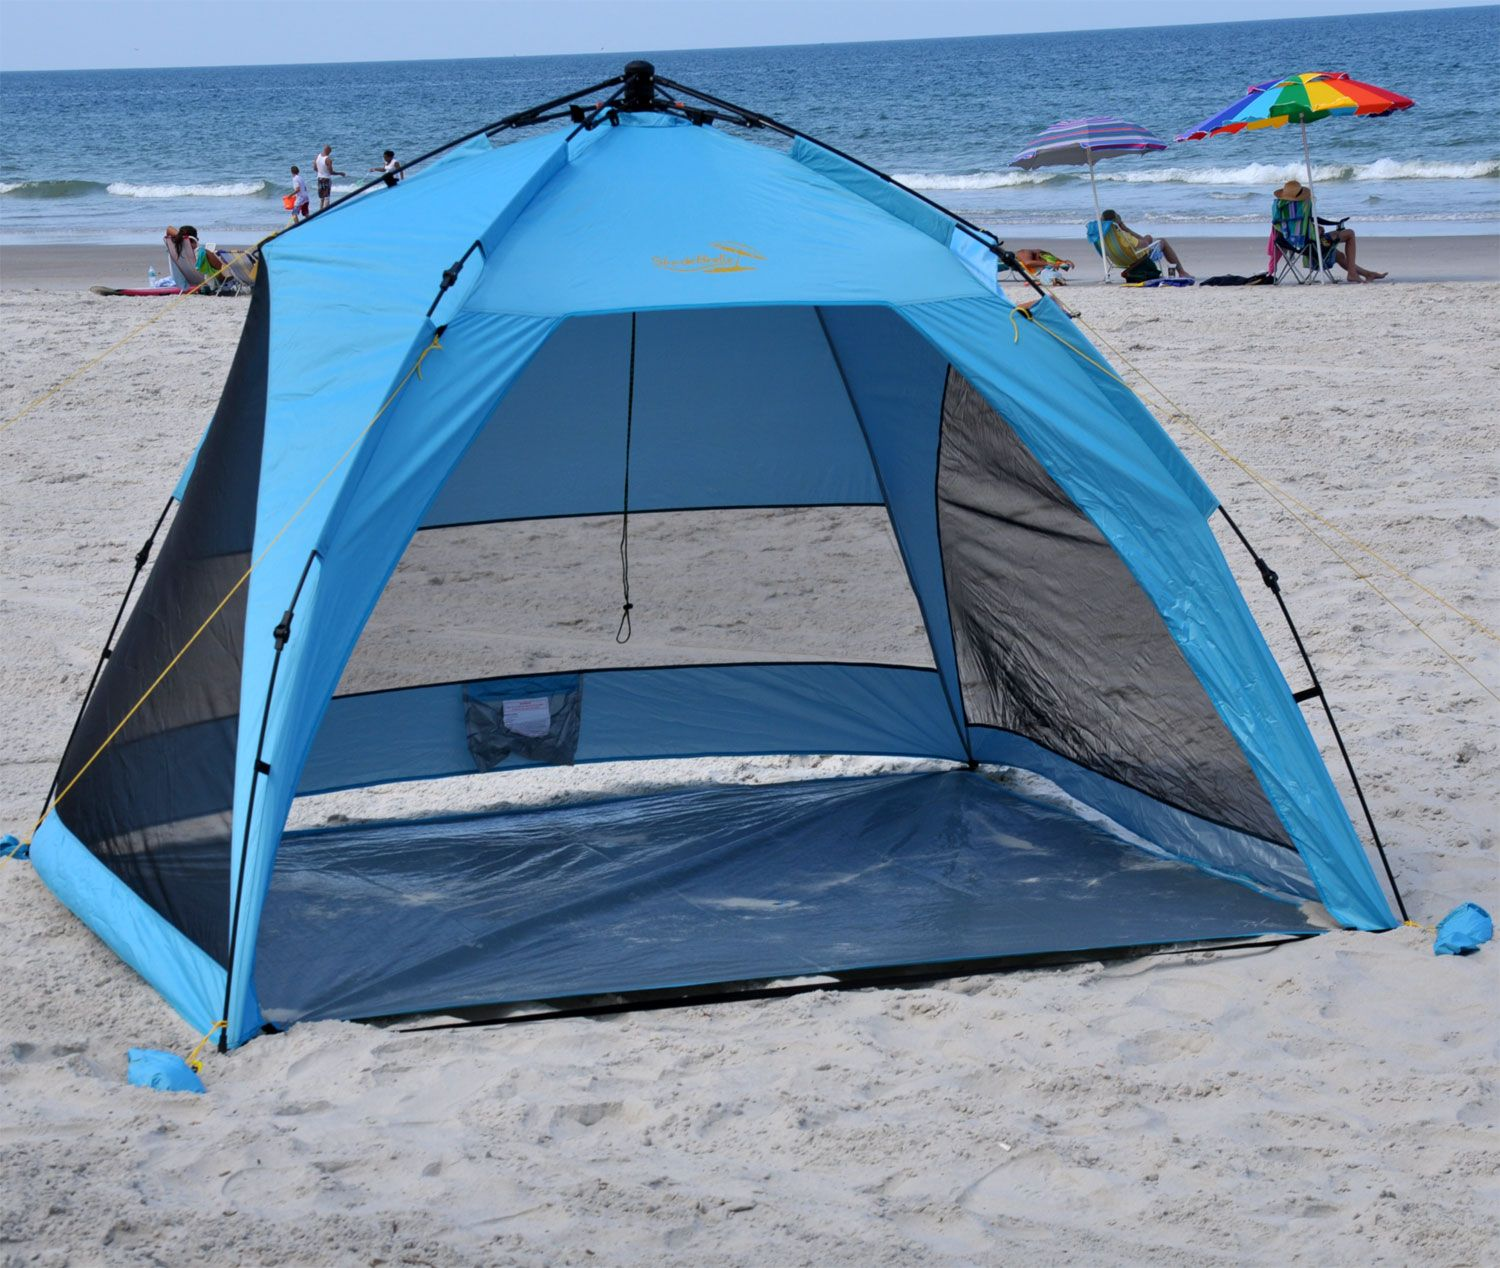 beach shade canopy | Beach Shelter | Jumbo Pop Up Beach Tents : best pop up tents - memphite.com